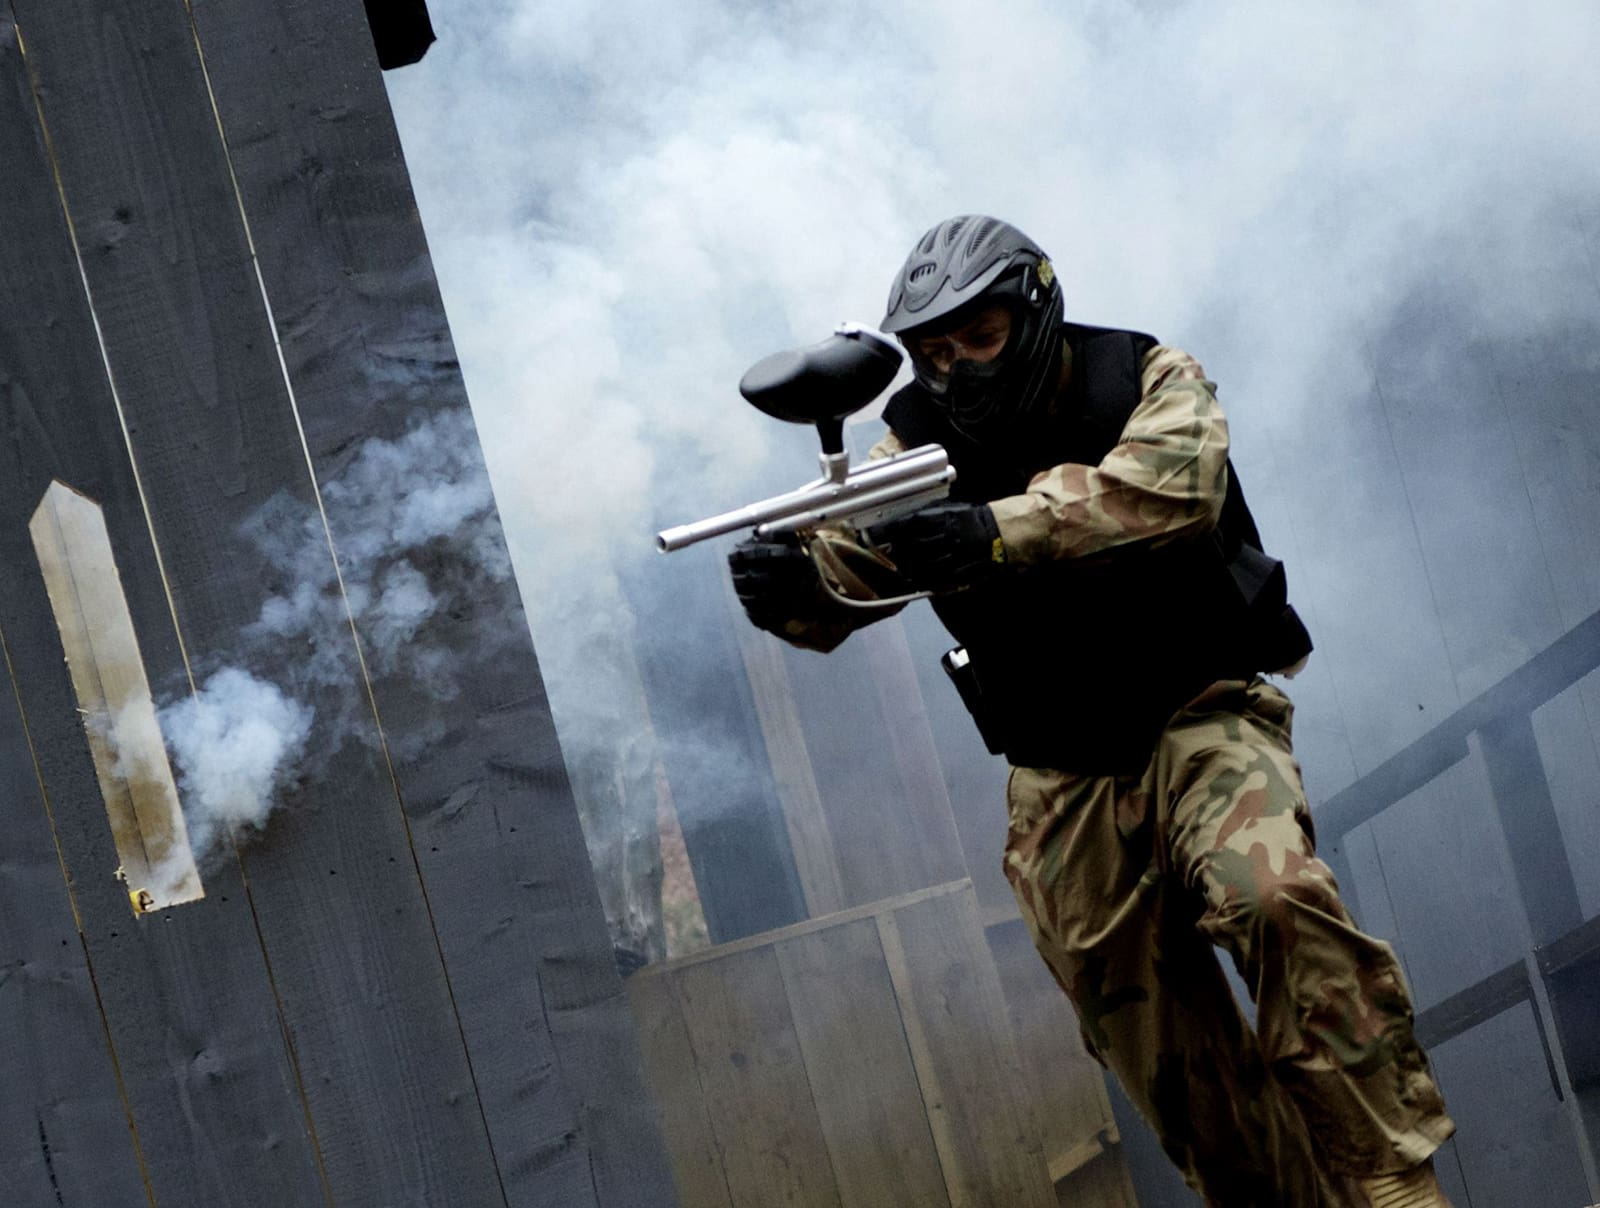 Paintball Player Storms Castle Surrounded by Smoke